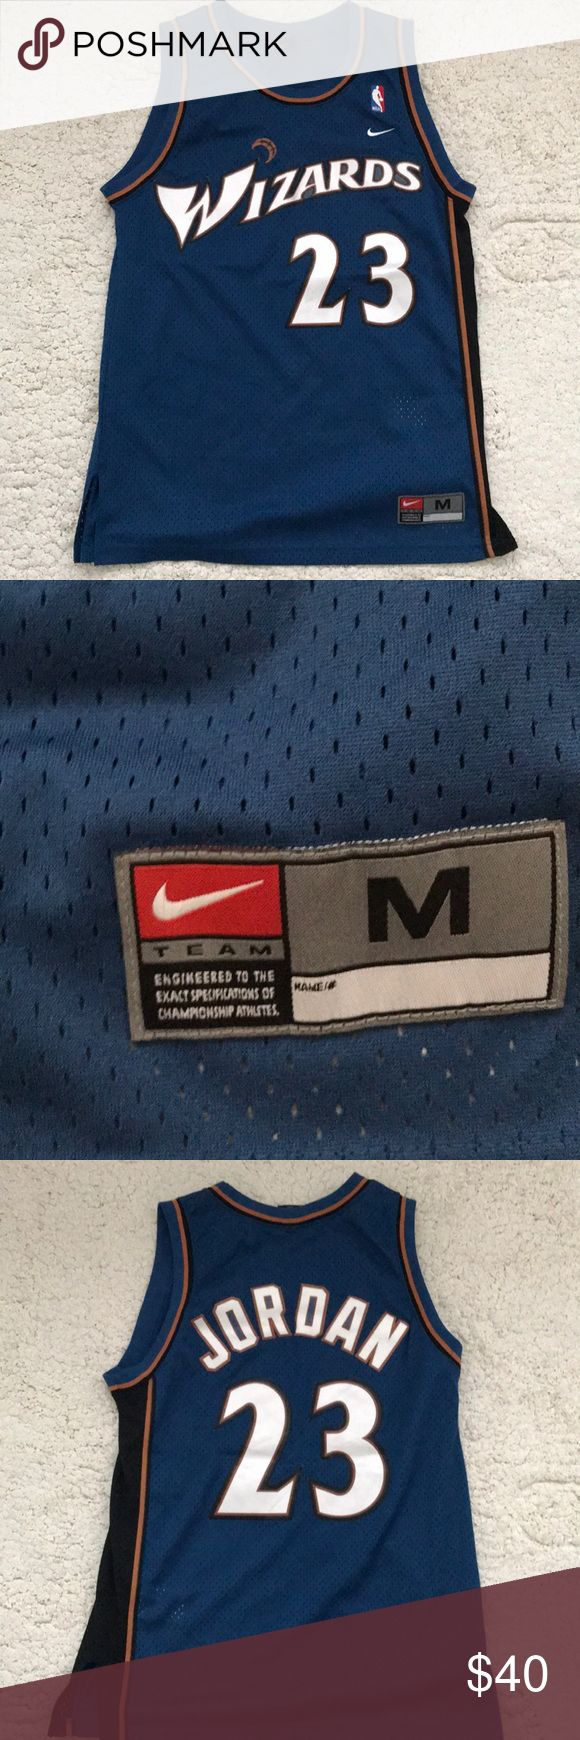 Nike Michael Jordan Wizards Jersey Very good condition Michael Jordan Wizards Jersey. Selling y collection since I need to clear out my closet. Size is Medium. No rips or stains. Nike Shirts Tank Tops